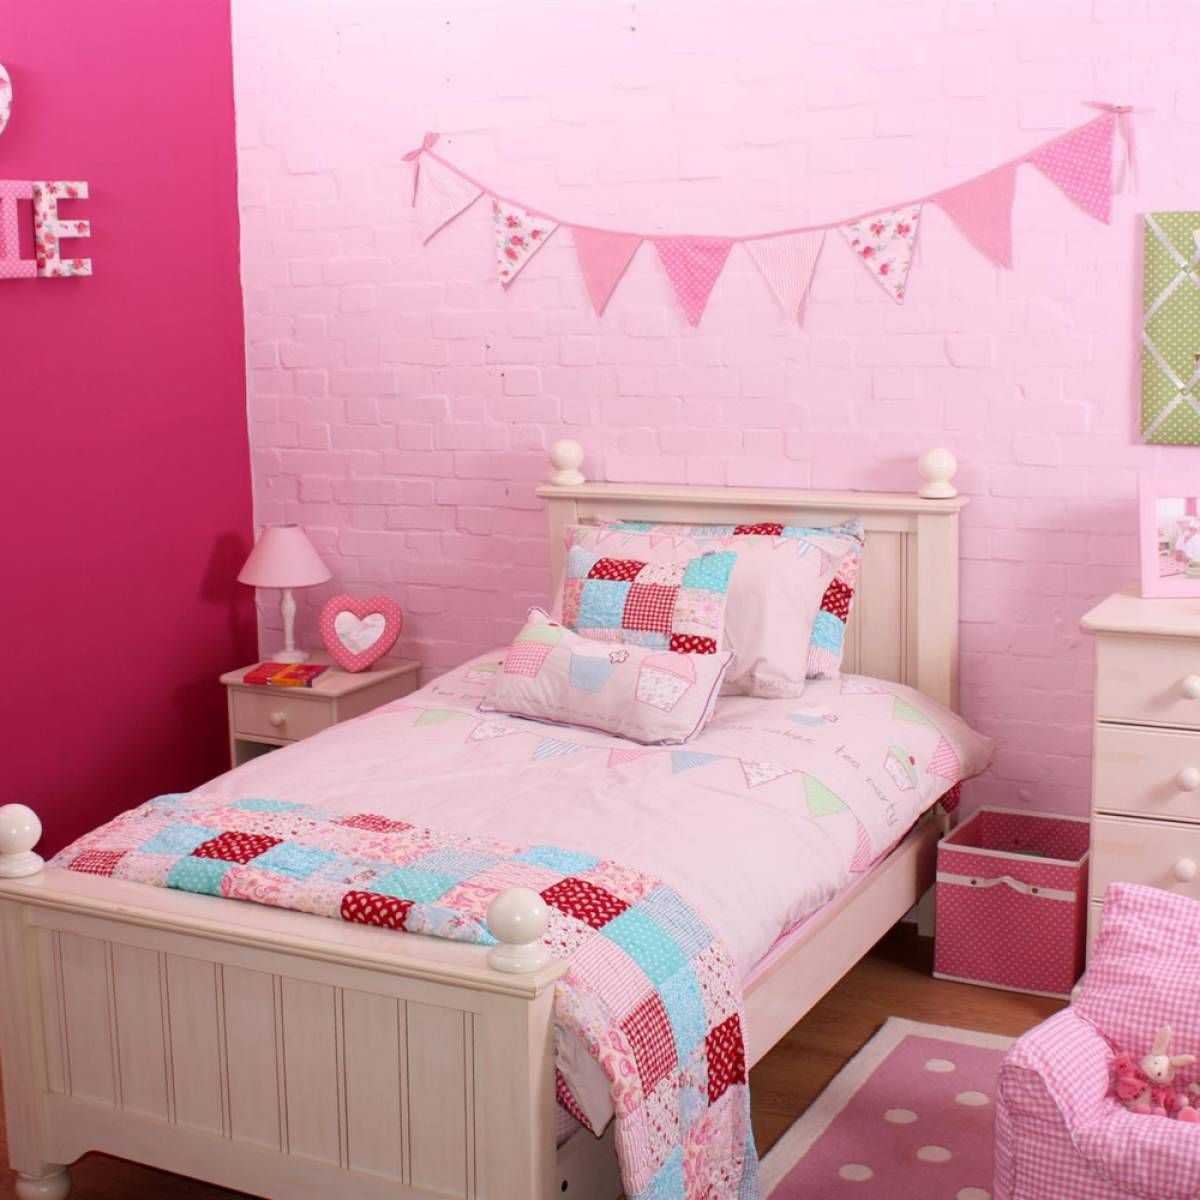 tea party single duvet set, also available in cot bed from